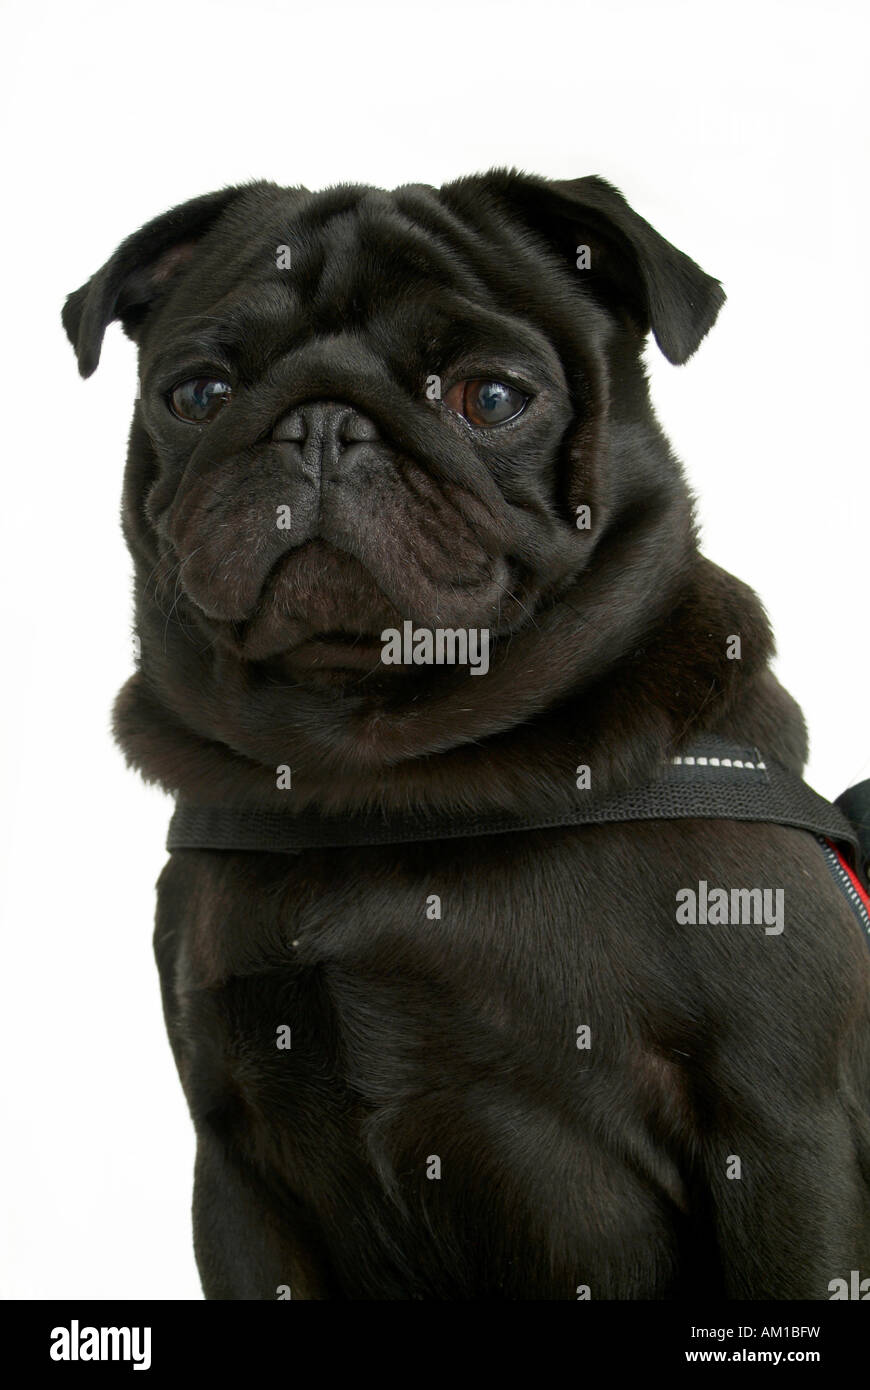 Portrait of a black pug - Stock Image